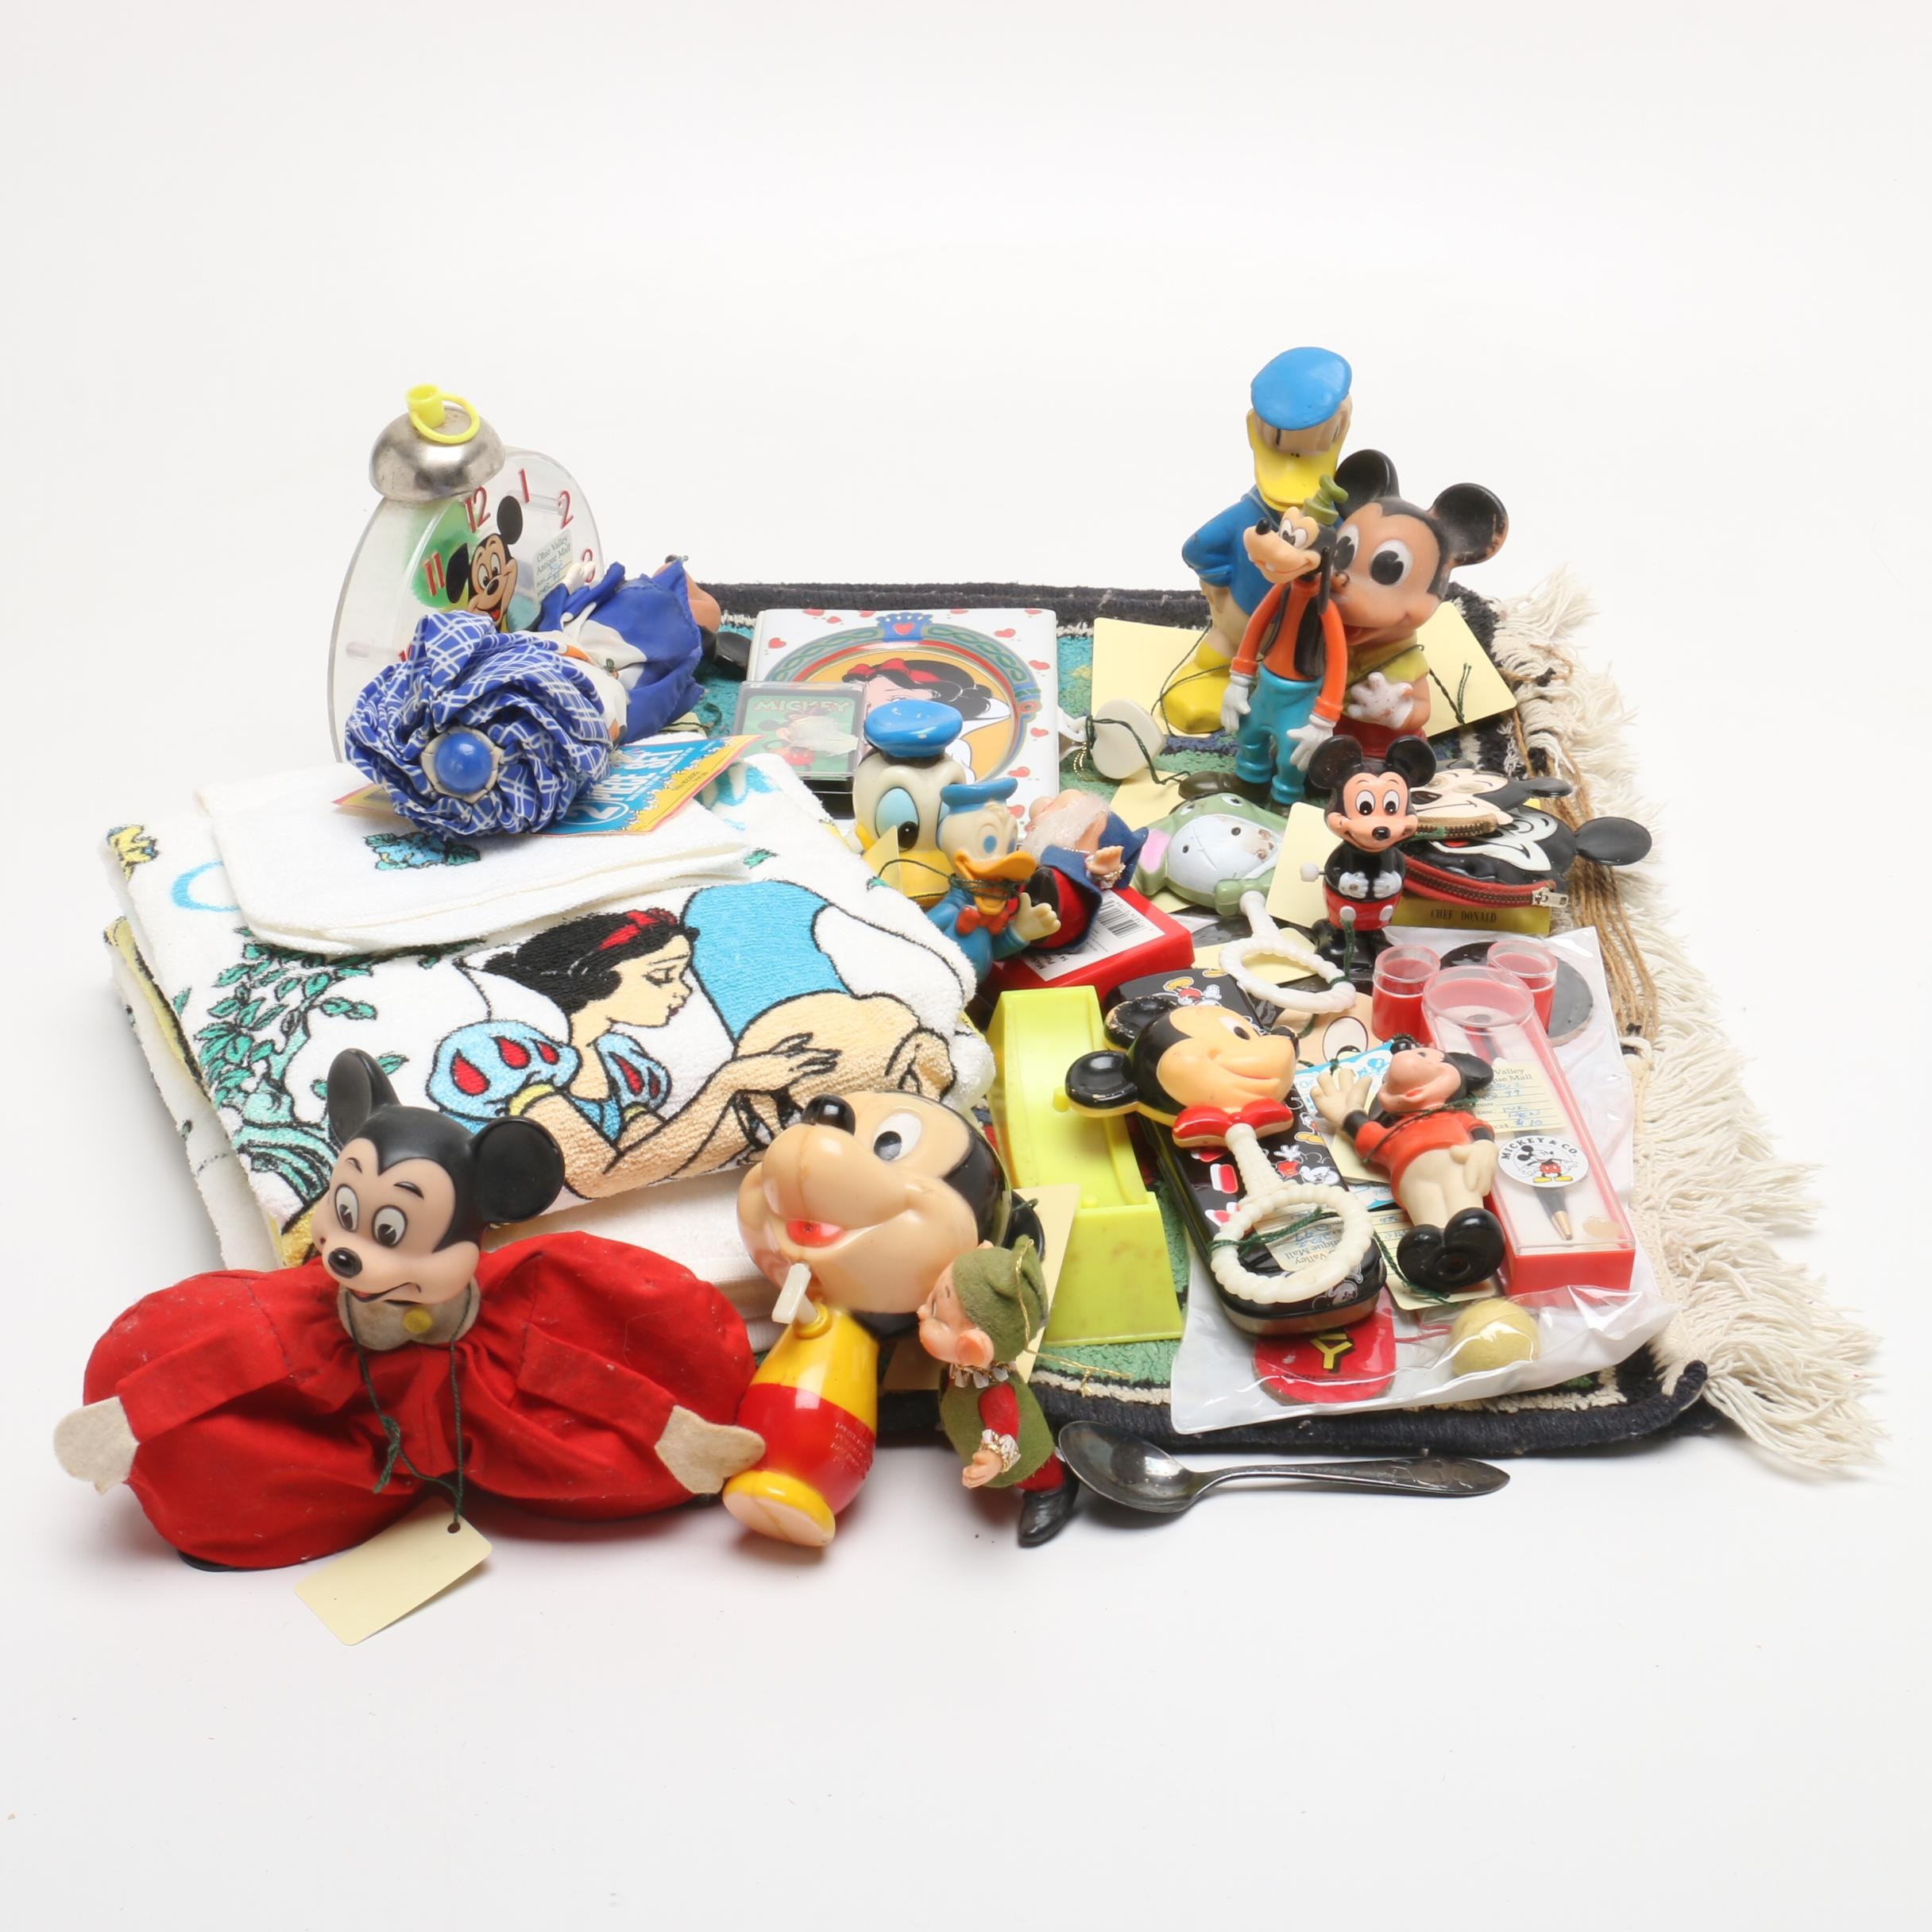 1960s-1980s Mickey Mouse and Friends Toys and Collectibles